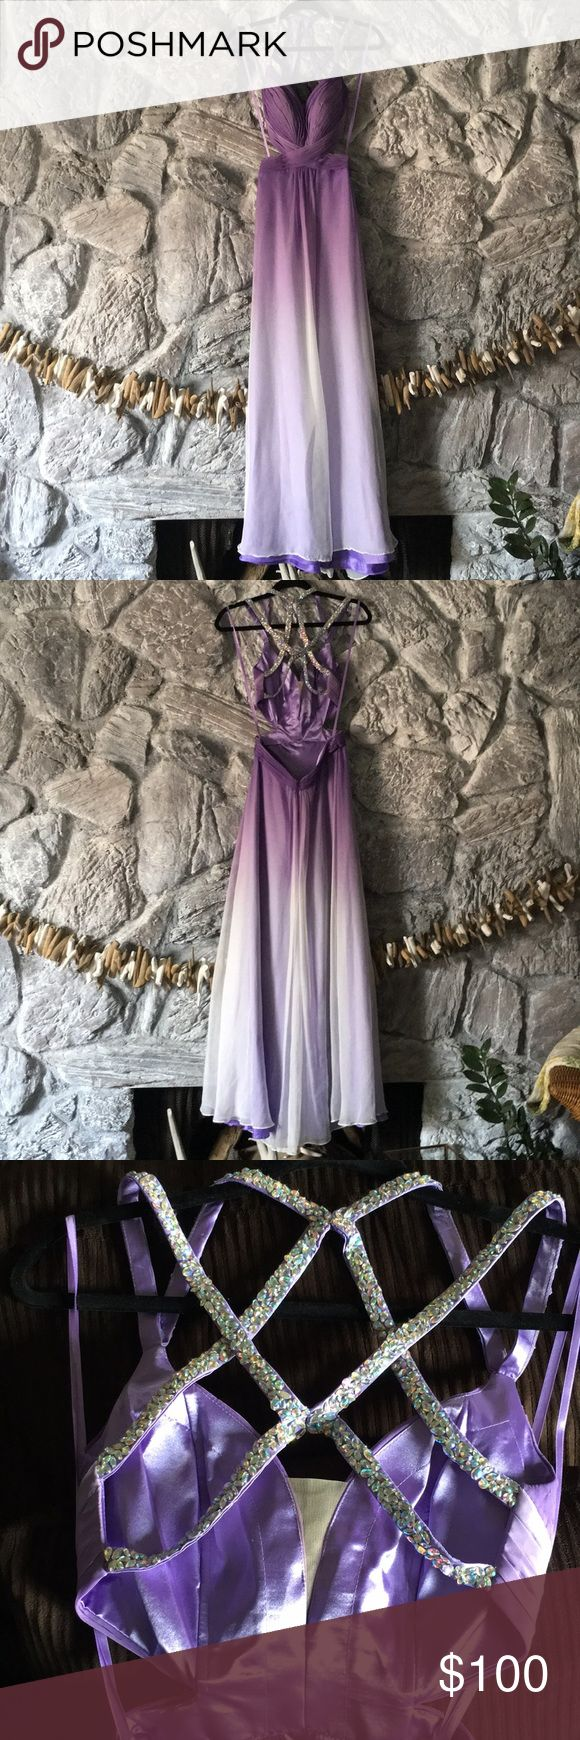 "Gorgeous Purple Ombré La Femme prom dress Gorgeous Purple Ombré La Femme prom dress. Small near hem but not noticeable. Beautiful chiffon gown with a ""V"" neckline and ombre treatment. The gown features side outs and a stunning beaded strappy back. Back zipper. Last two pics are not the actual gown but that's how it looks La Femme Dresses Prom"